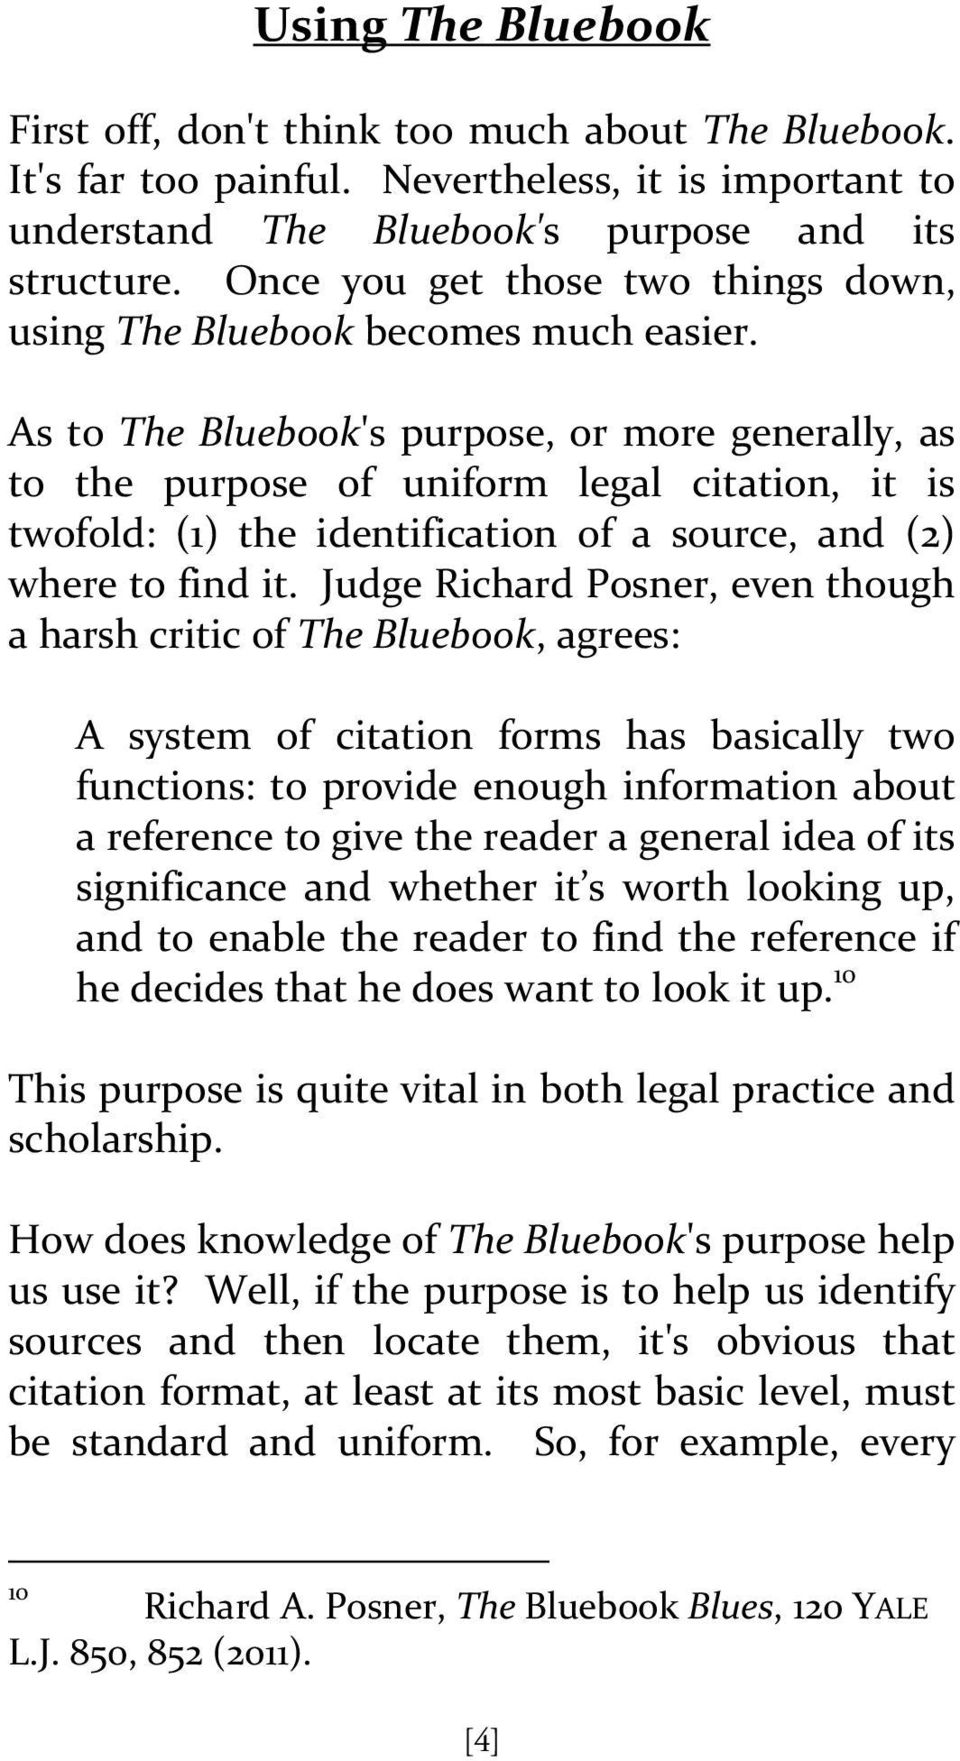 As to The Bluebook's purpose, or more generally, as to the purpose of uniform legal citation, it is twofold: (1) the identification of a source, and (2) where to find it.